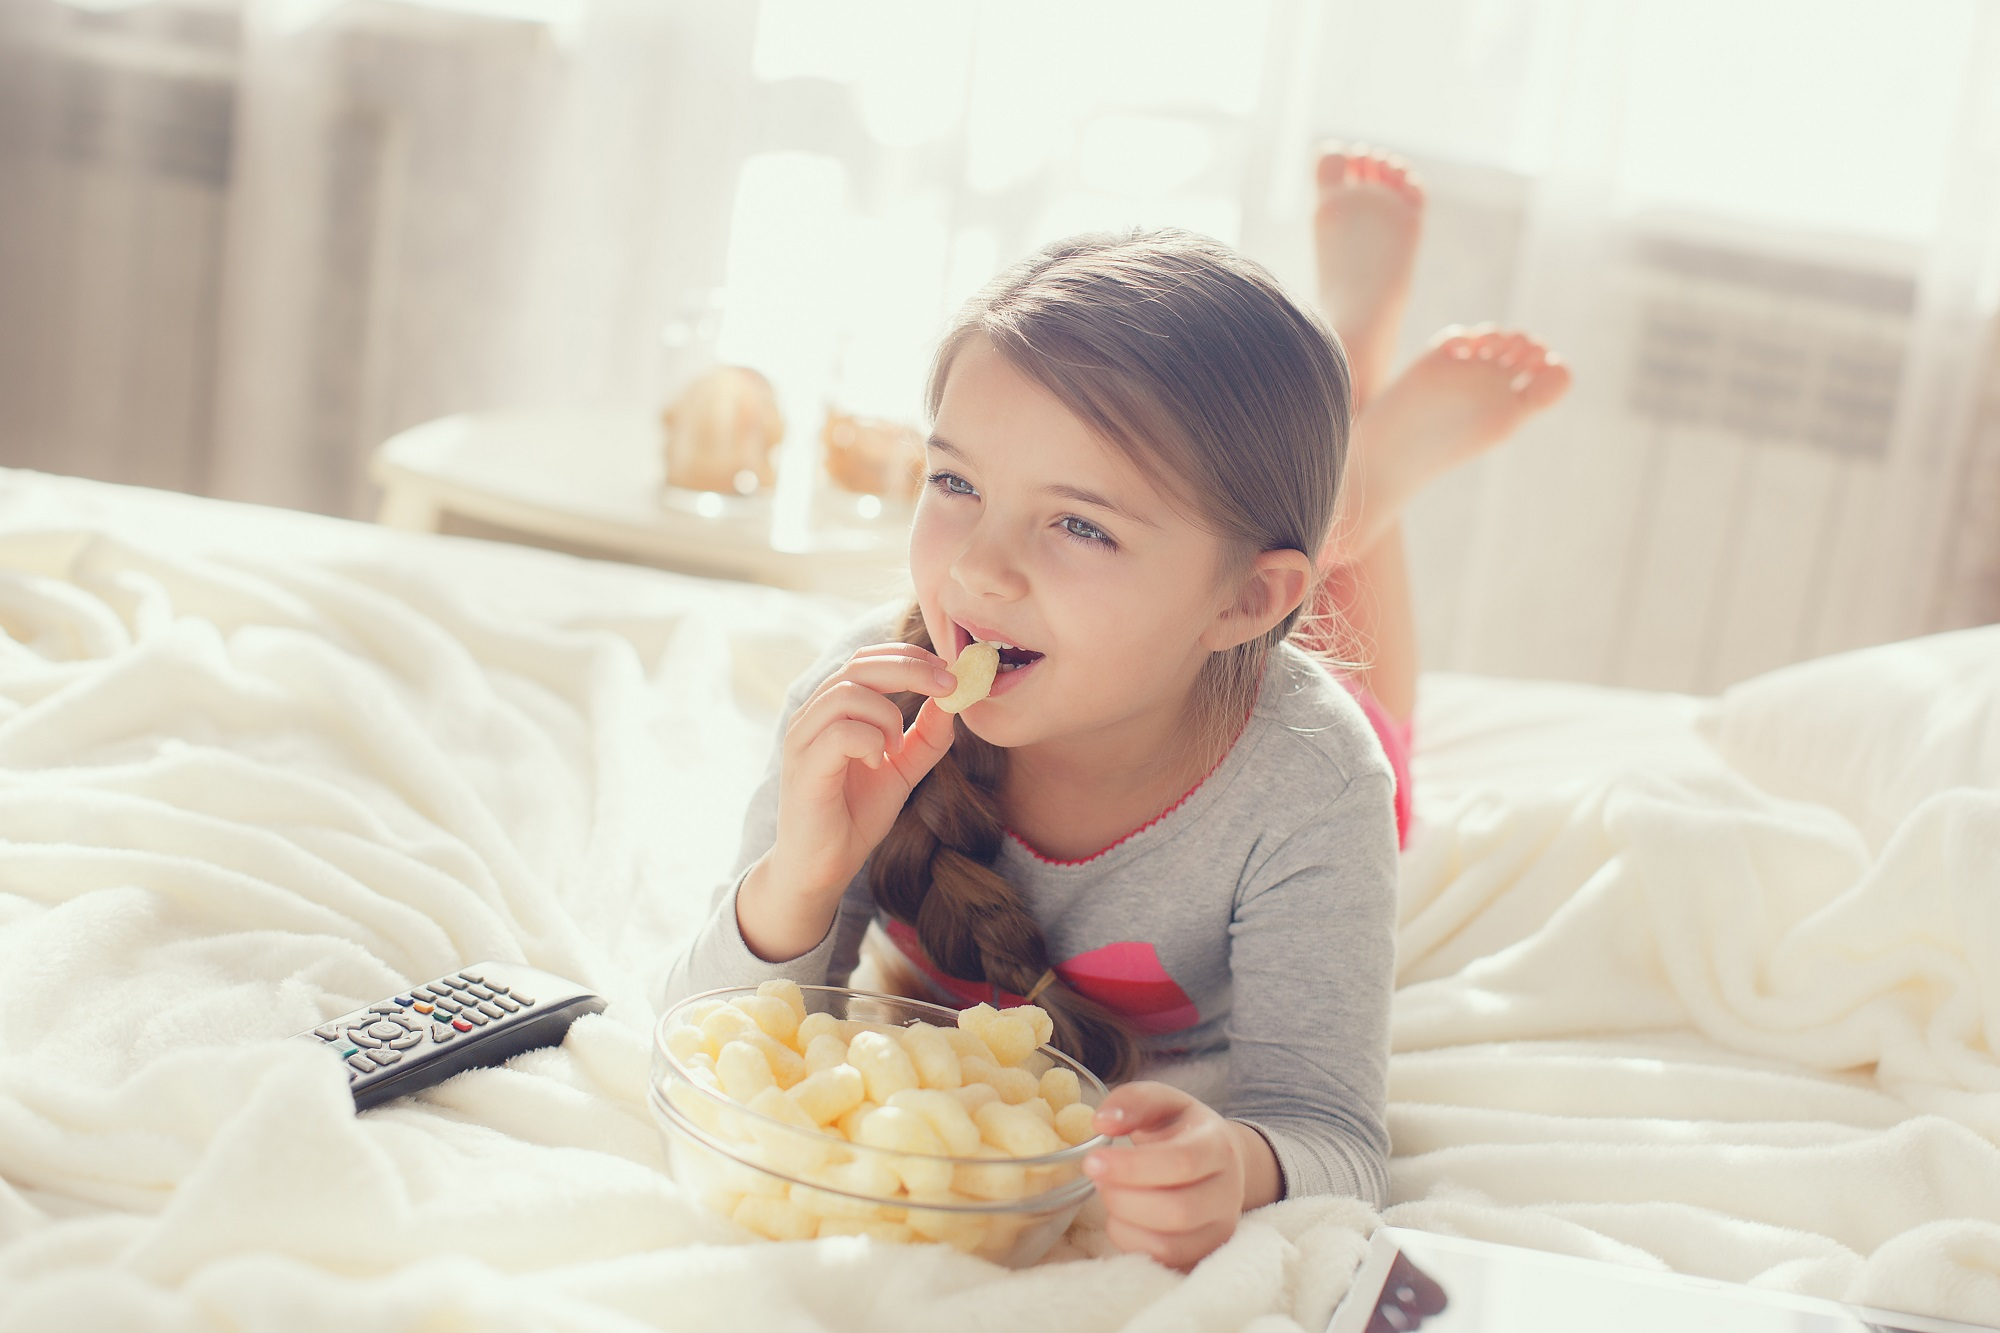 Young Girl Snacking on Cheese Puffs in Bed with TV Remote Control